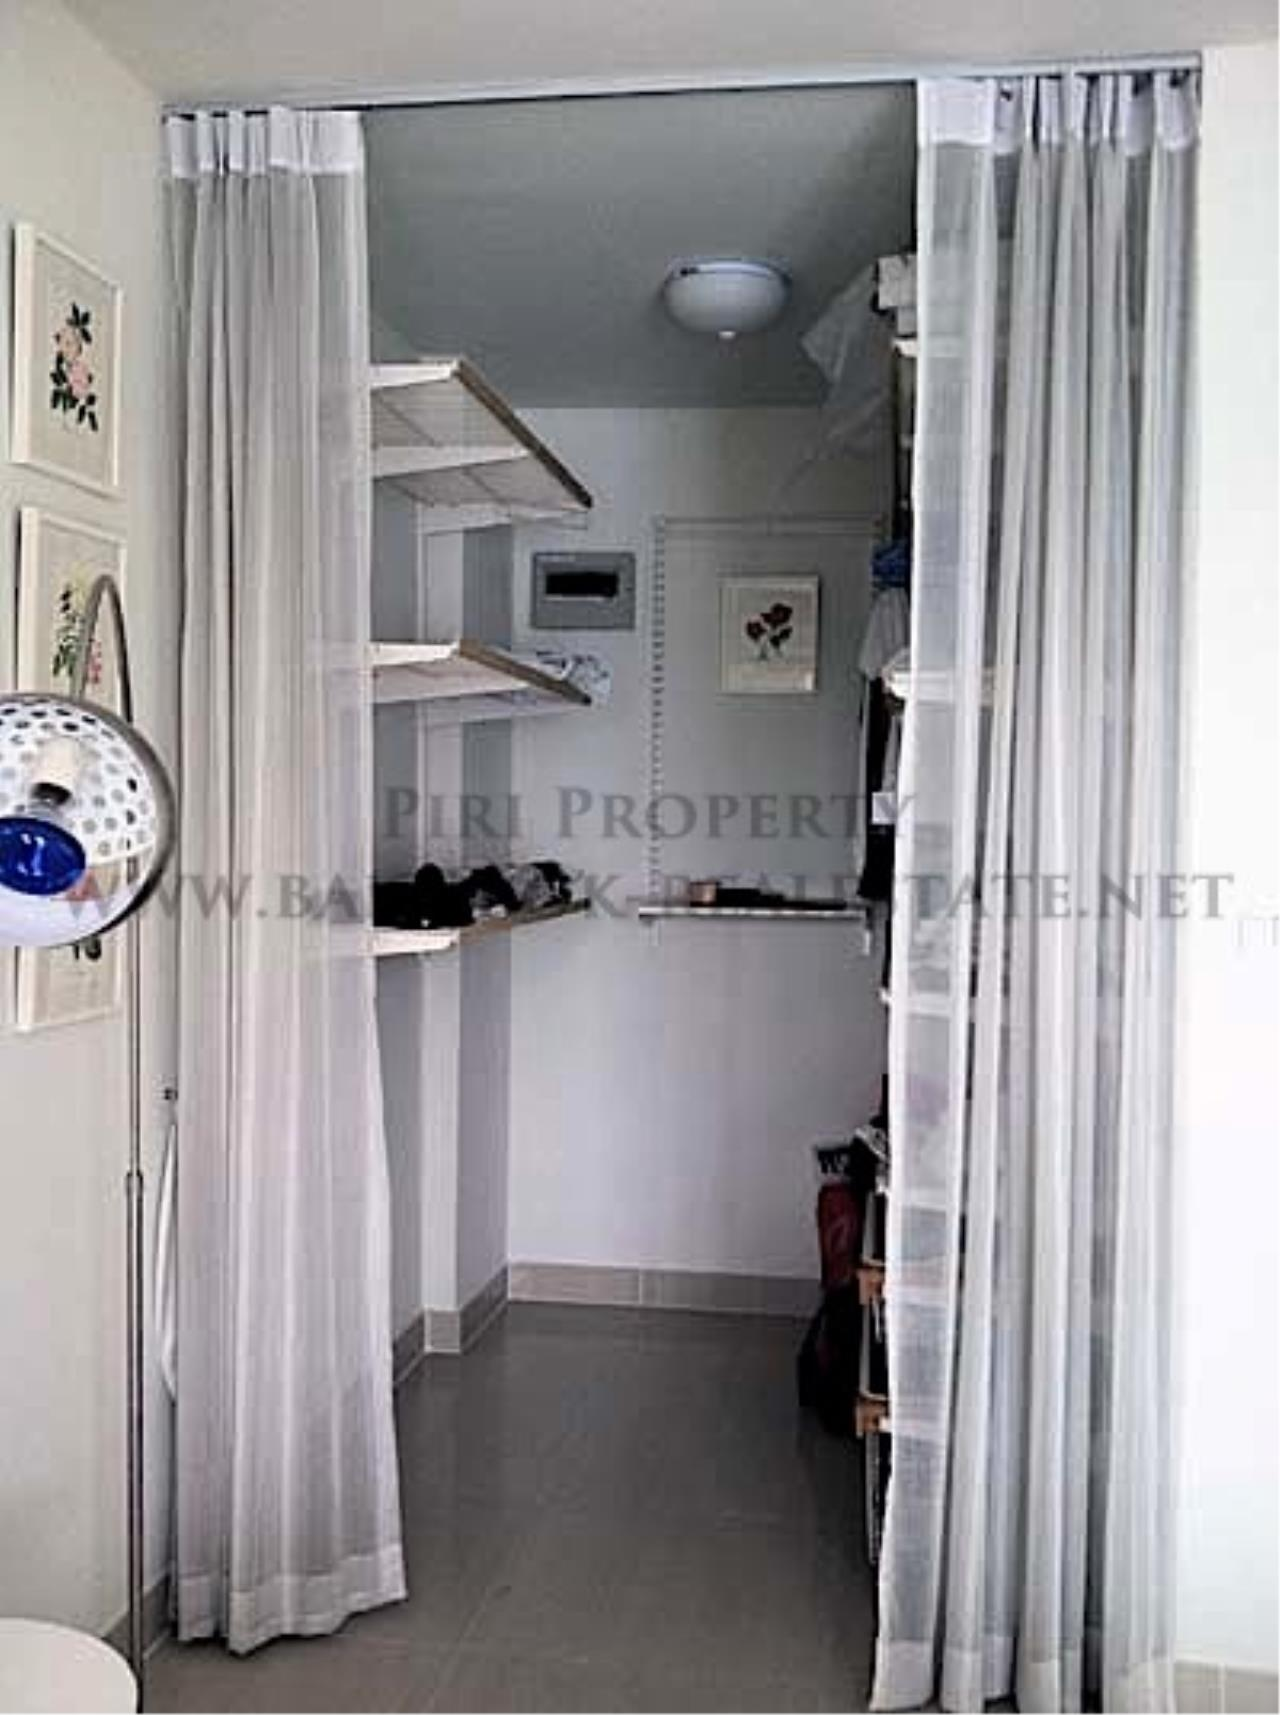 Piri Property Agency's iHouse - Nicely Furnished One Bedroom Unit 5